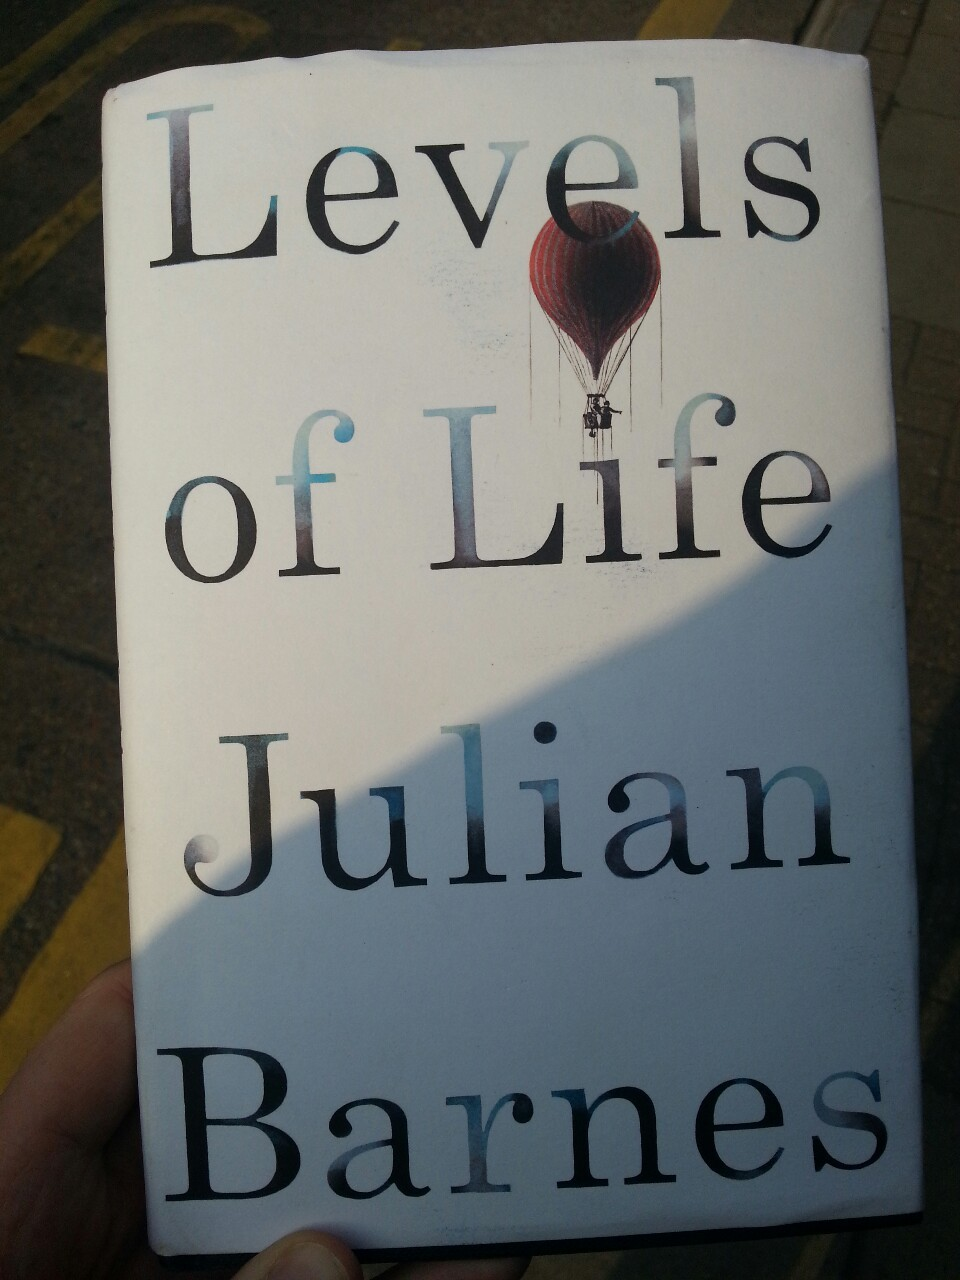 Finished Julian Barnes' new book yesterday. It made me cry. The first half is rather odd, the second half pulls it all into perspective and gets you in the tear ducts.